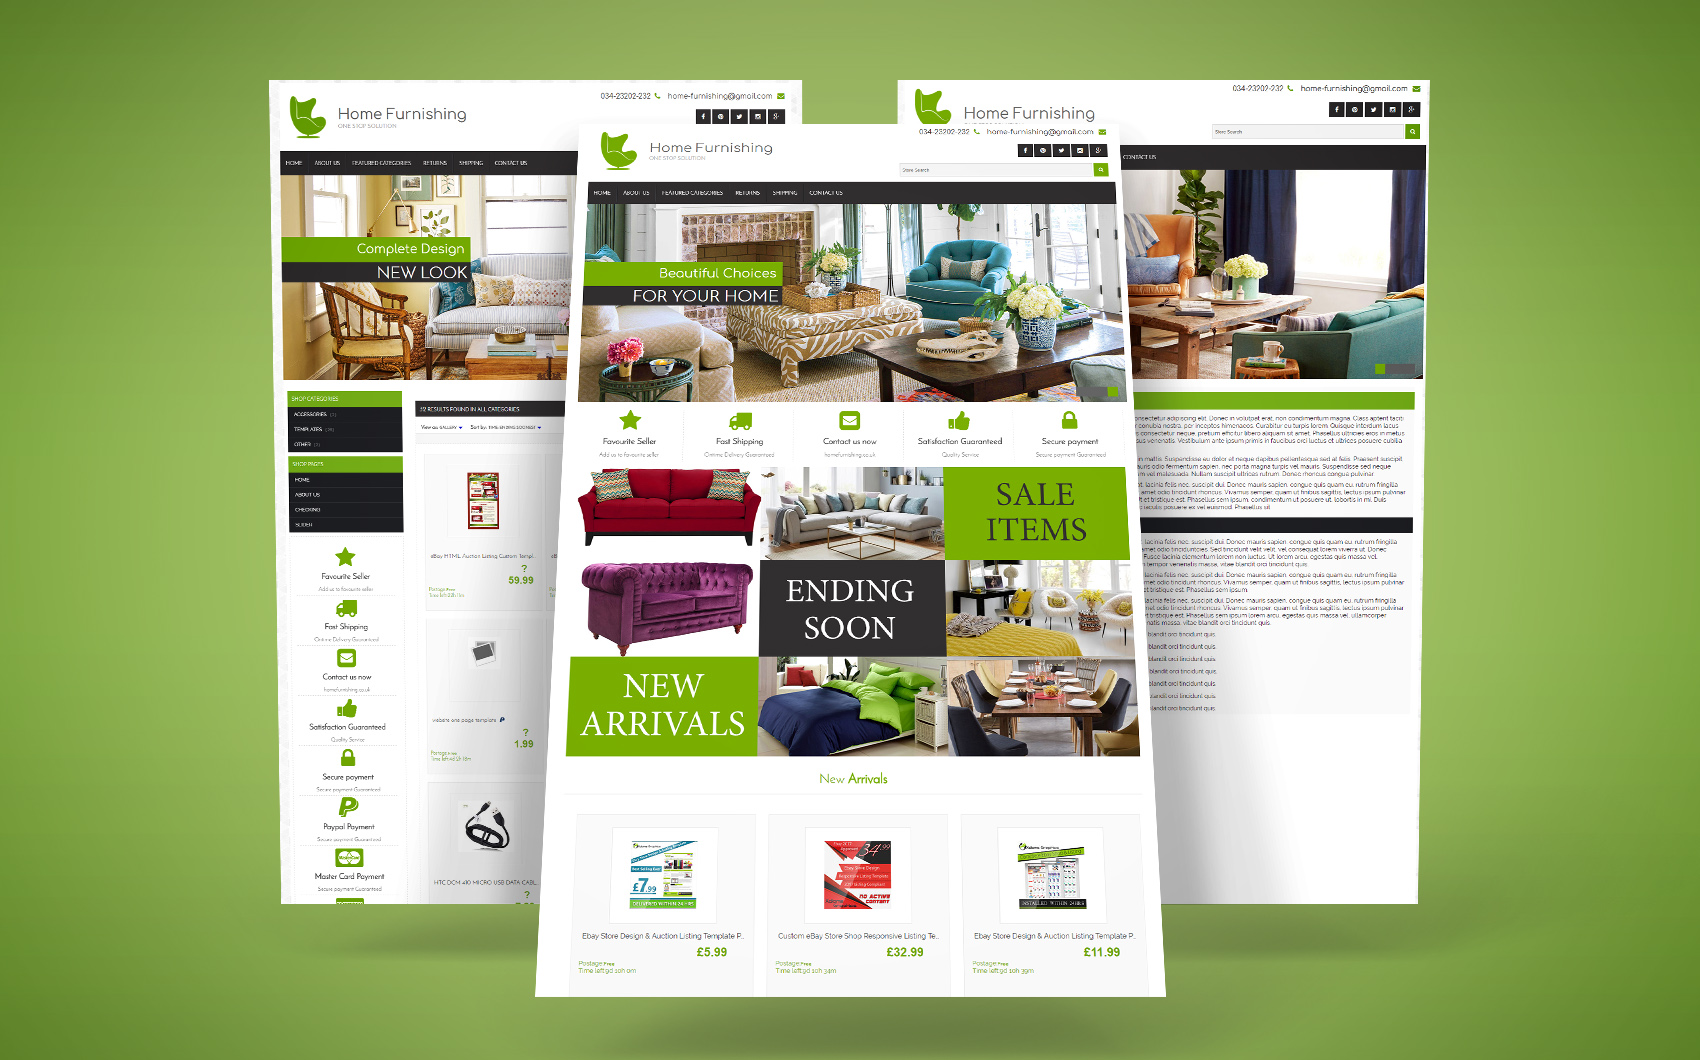 Home Furnishing EBay Template - screenshot